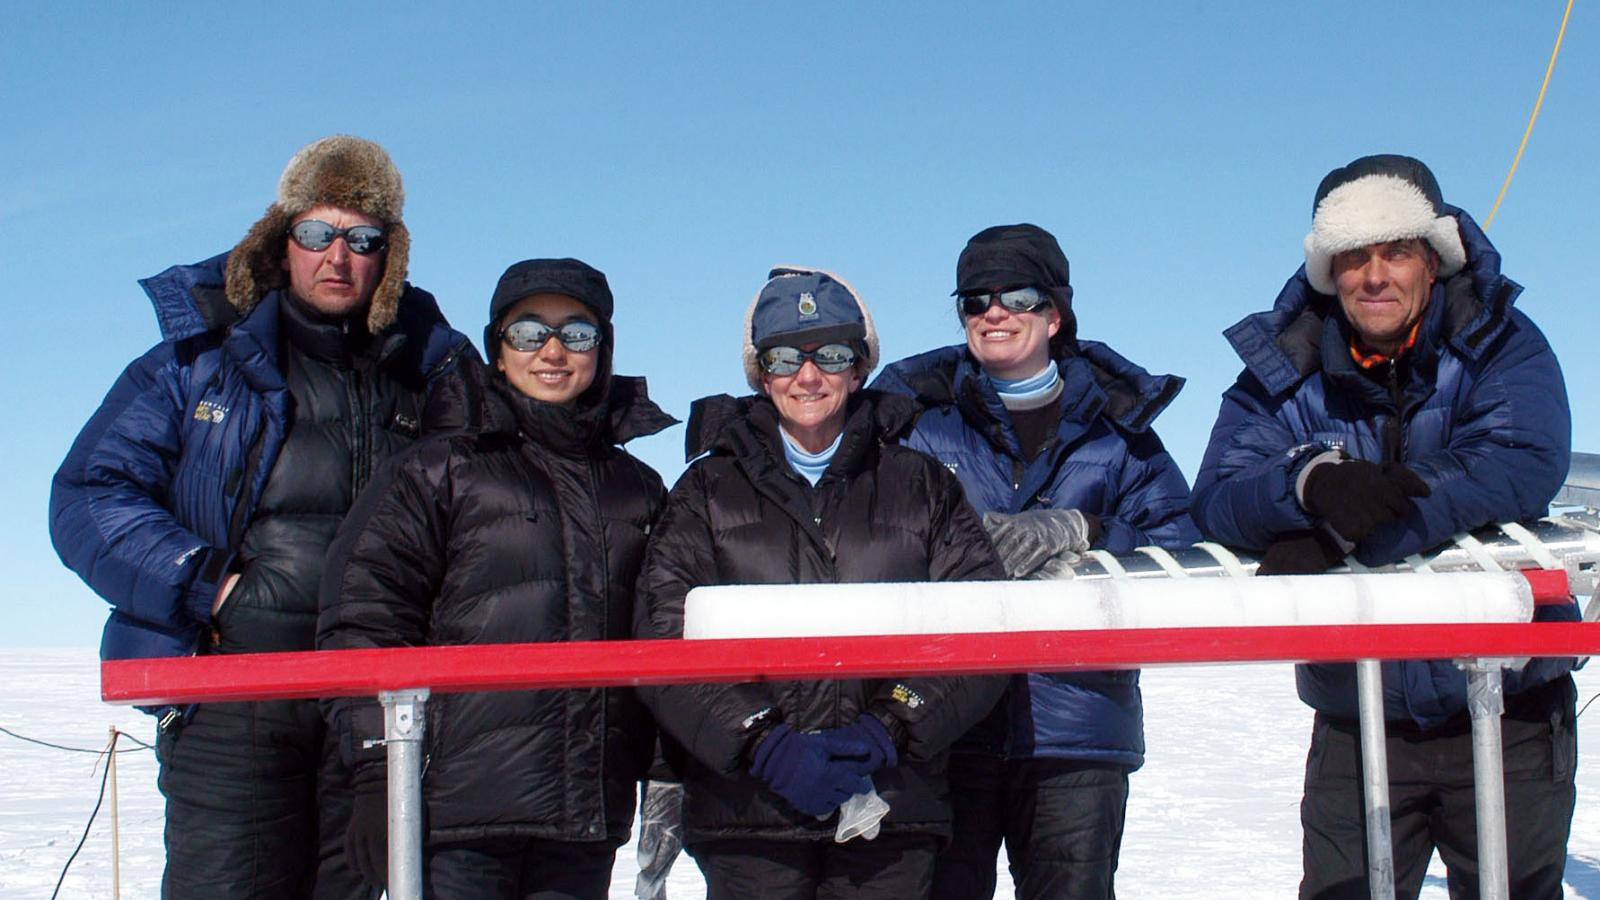 Field team in Greenland drilling ice cores